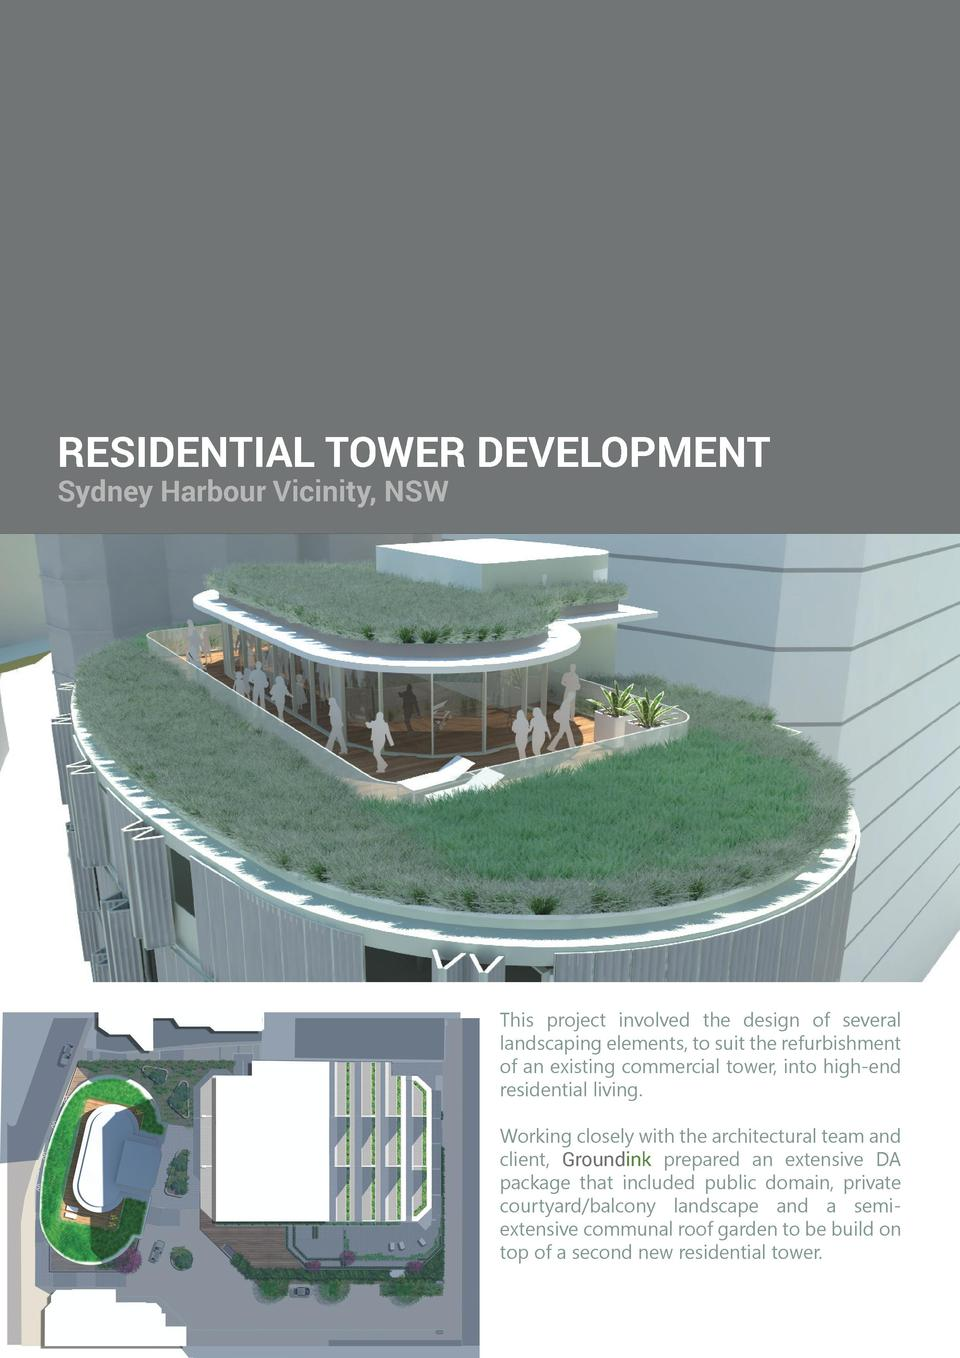 RESIDENTIAL TOWER DEVELOPMENT Sydney Harbour Vicinity, NSW  This project involved the design of several landscaping elemen...